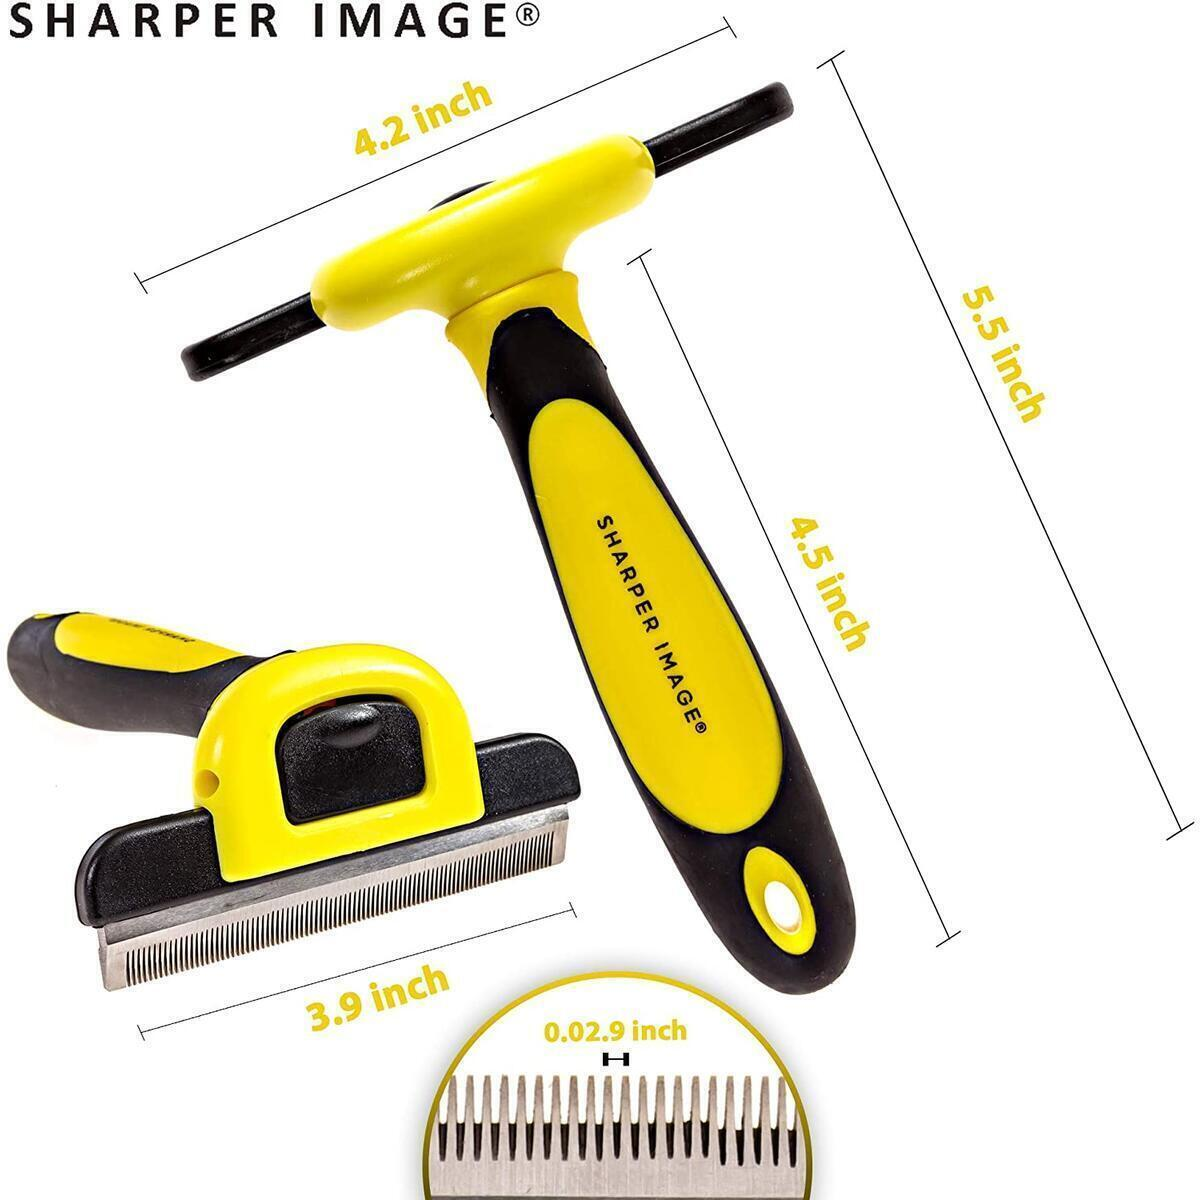 Dog Brush for Shedding - Professional Deshedding Tool for Dogs and Cats for Short Hair and Long Hair - Pet Grooming Tools Reduces Shedding